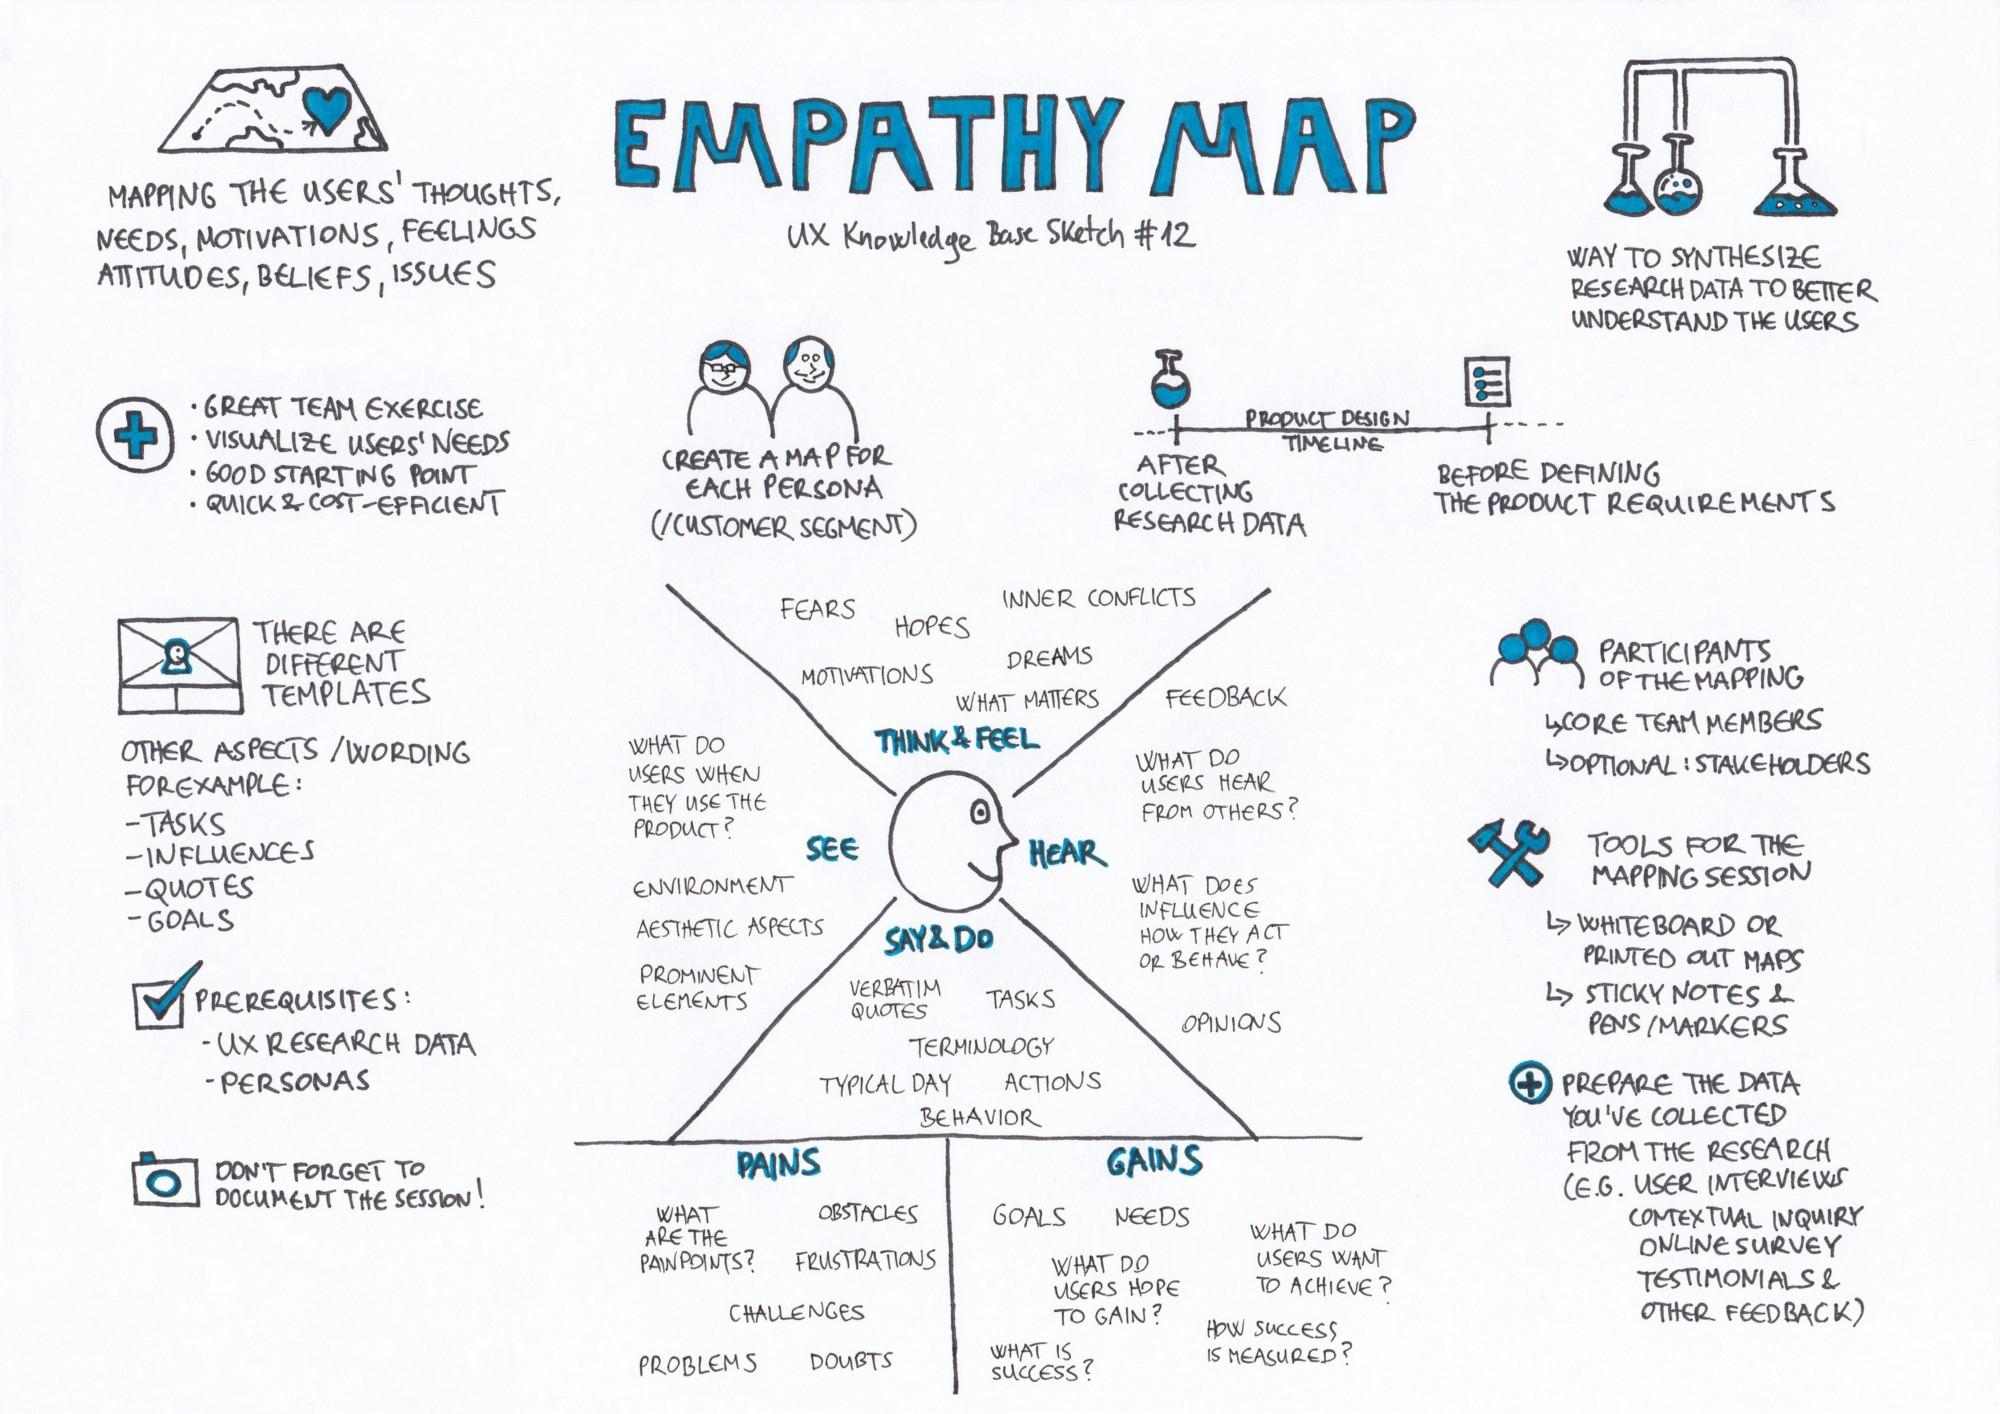 Synthèse Empathy Map